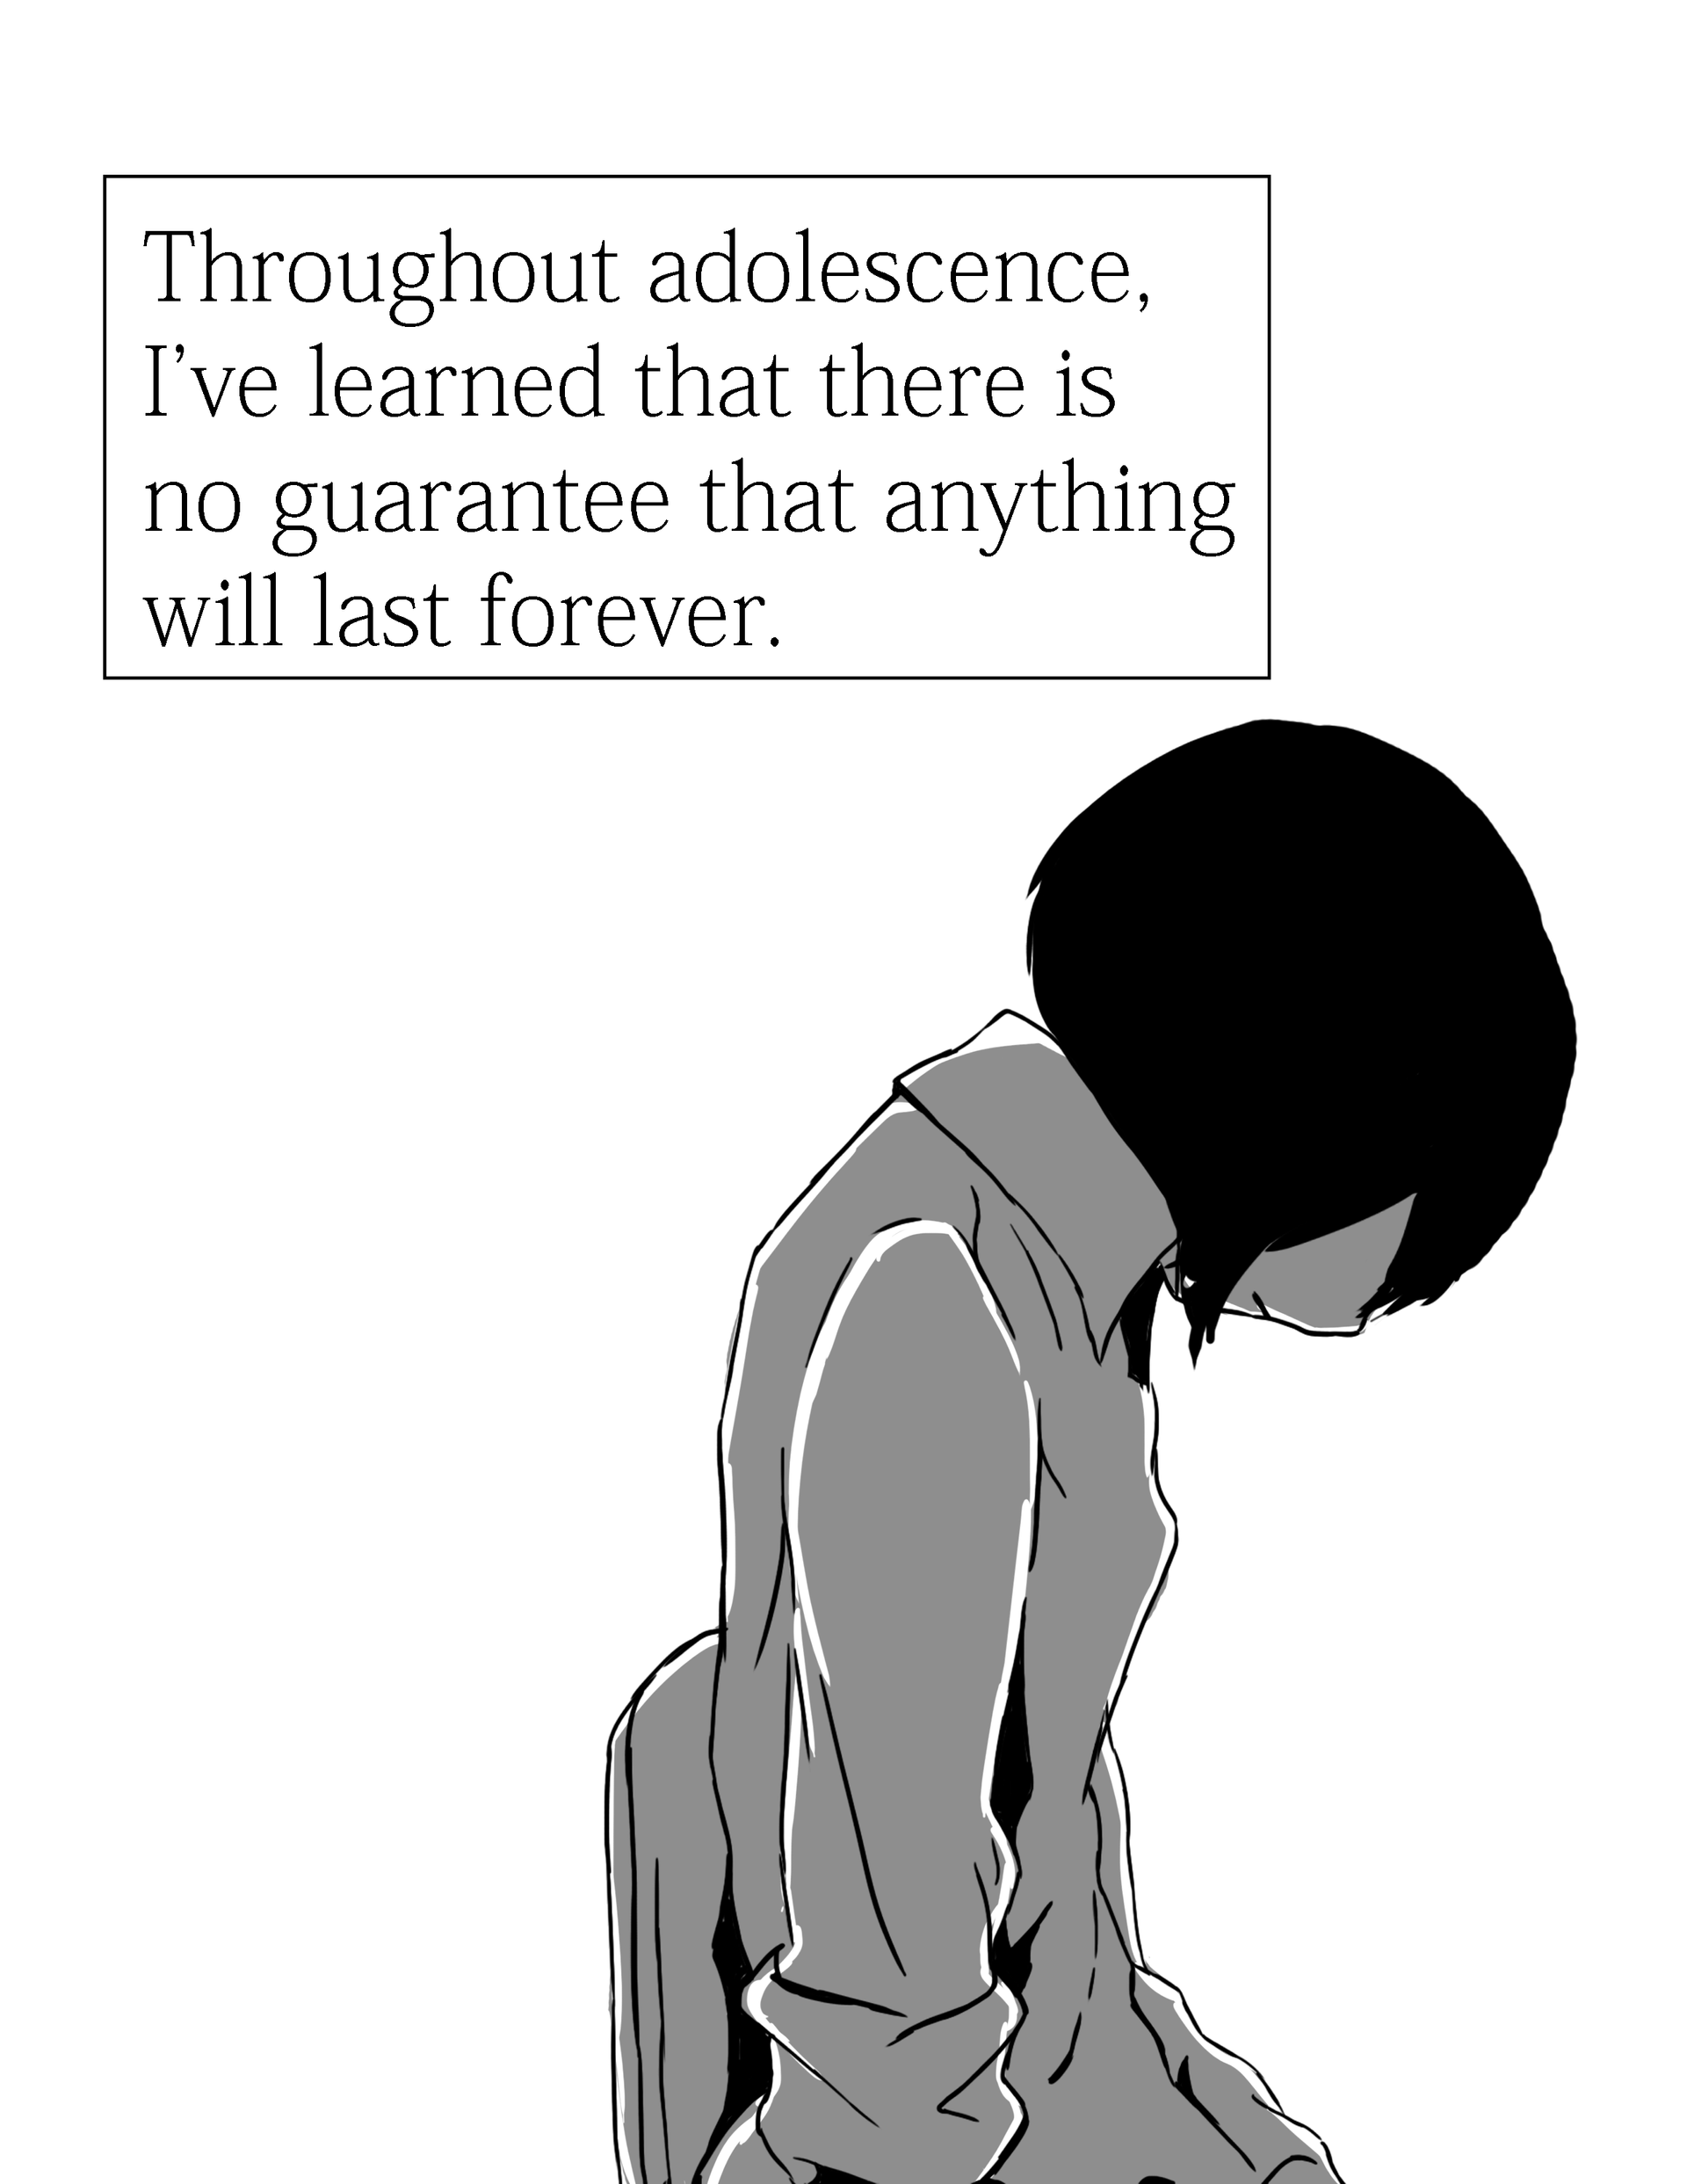 Adolescence (6).png